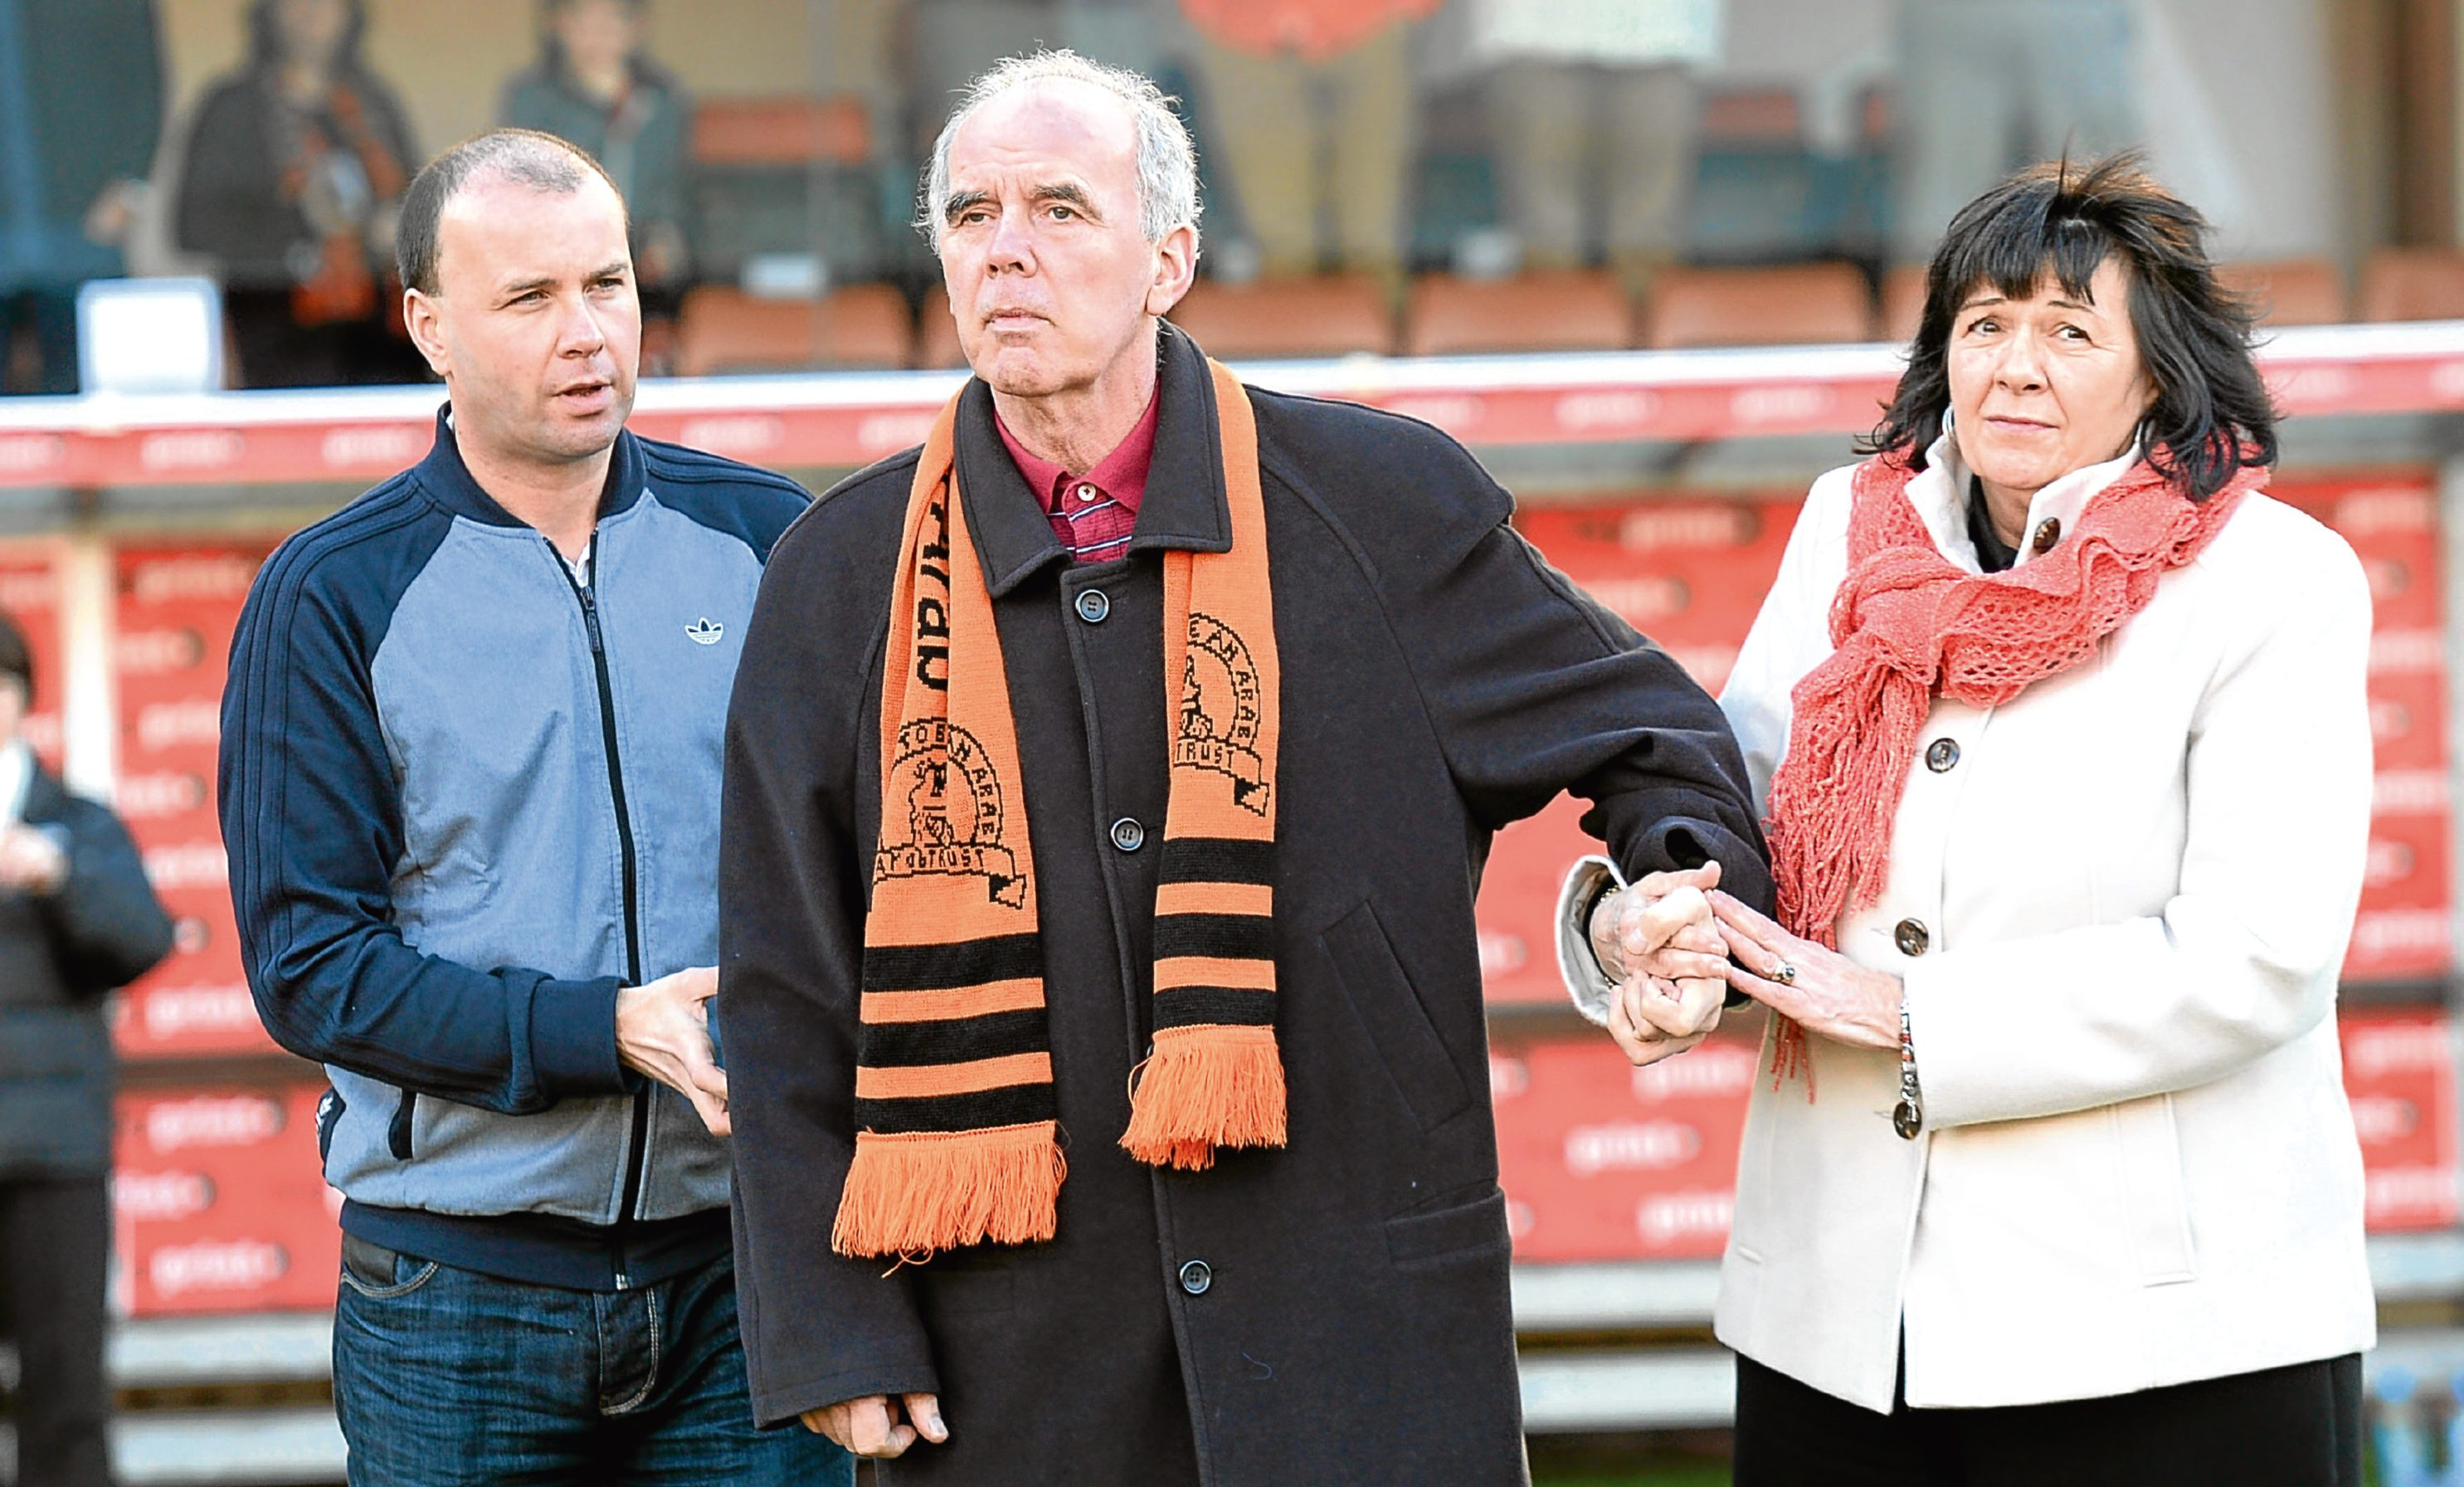 Ex-Dundee Utd ace Frank Kopel, and wife Amanda, make an appearance on the pitch at half time as part of the Frank Kopel Alzheimer's Awareness Campaign